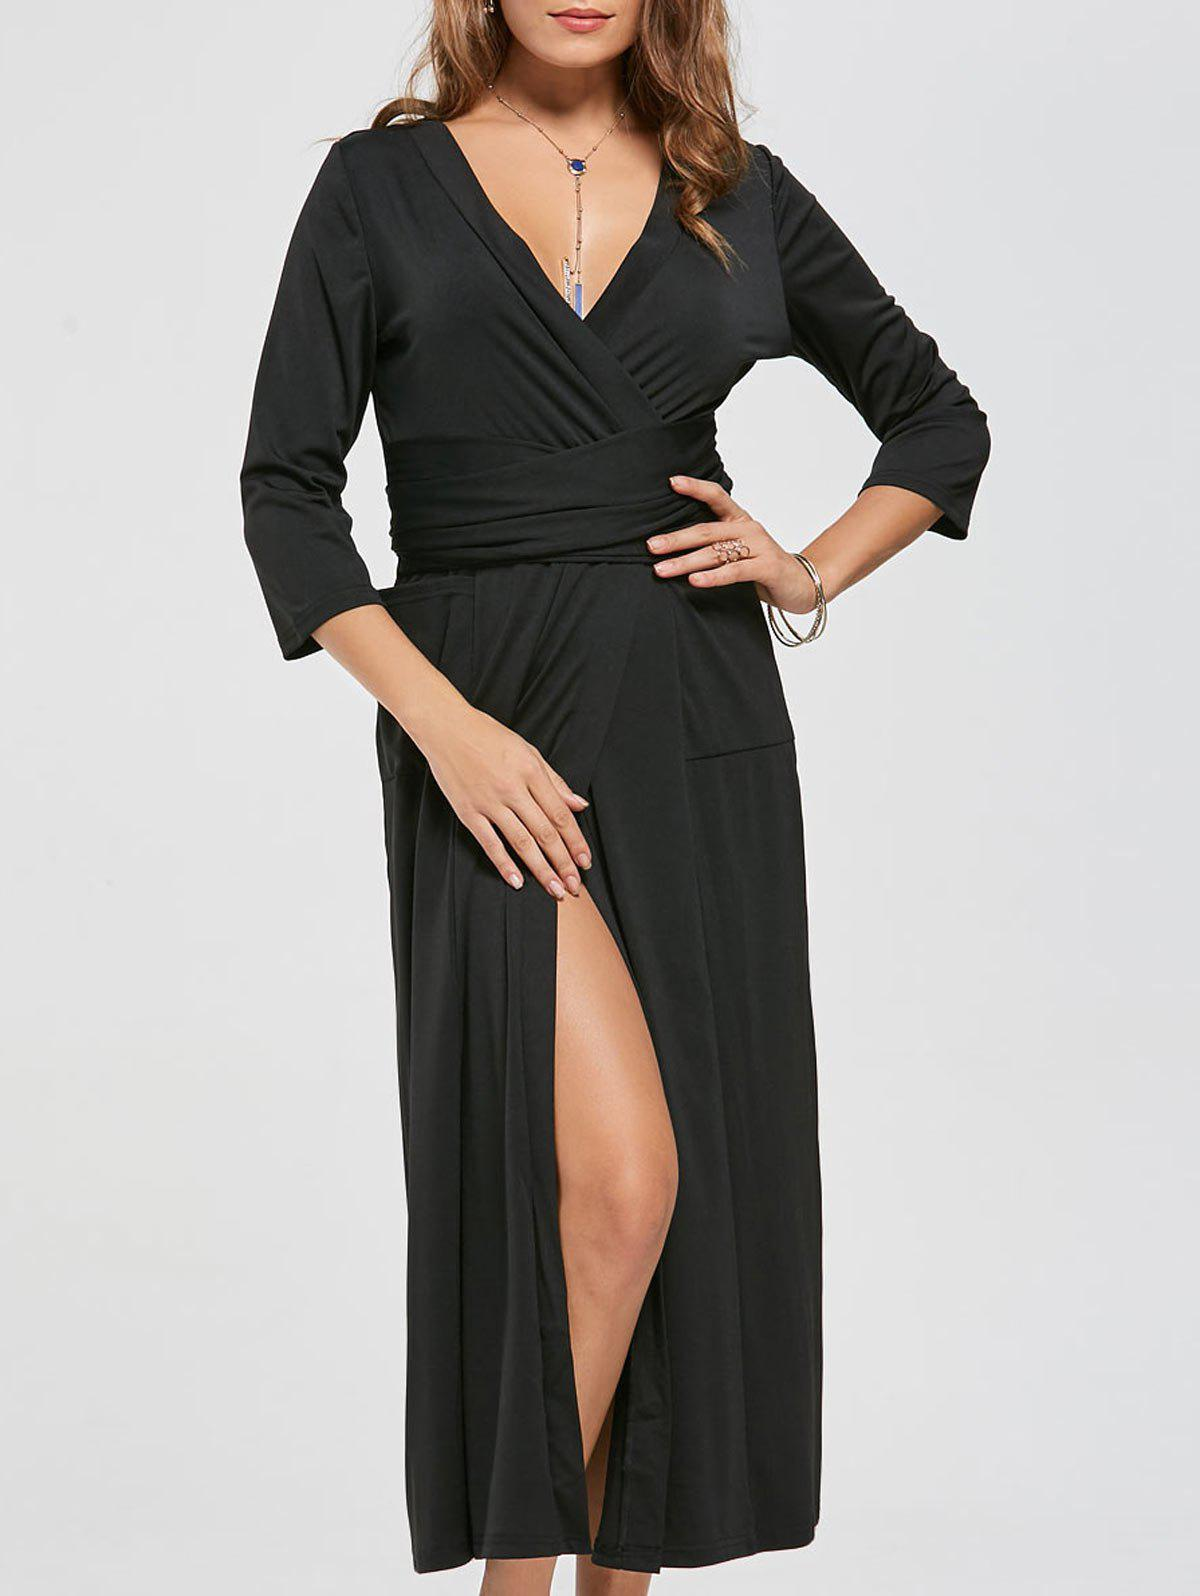 V Neck Pockets Robe de survêtement Midi - Noir 2XL